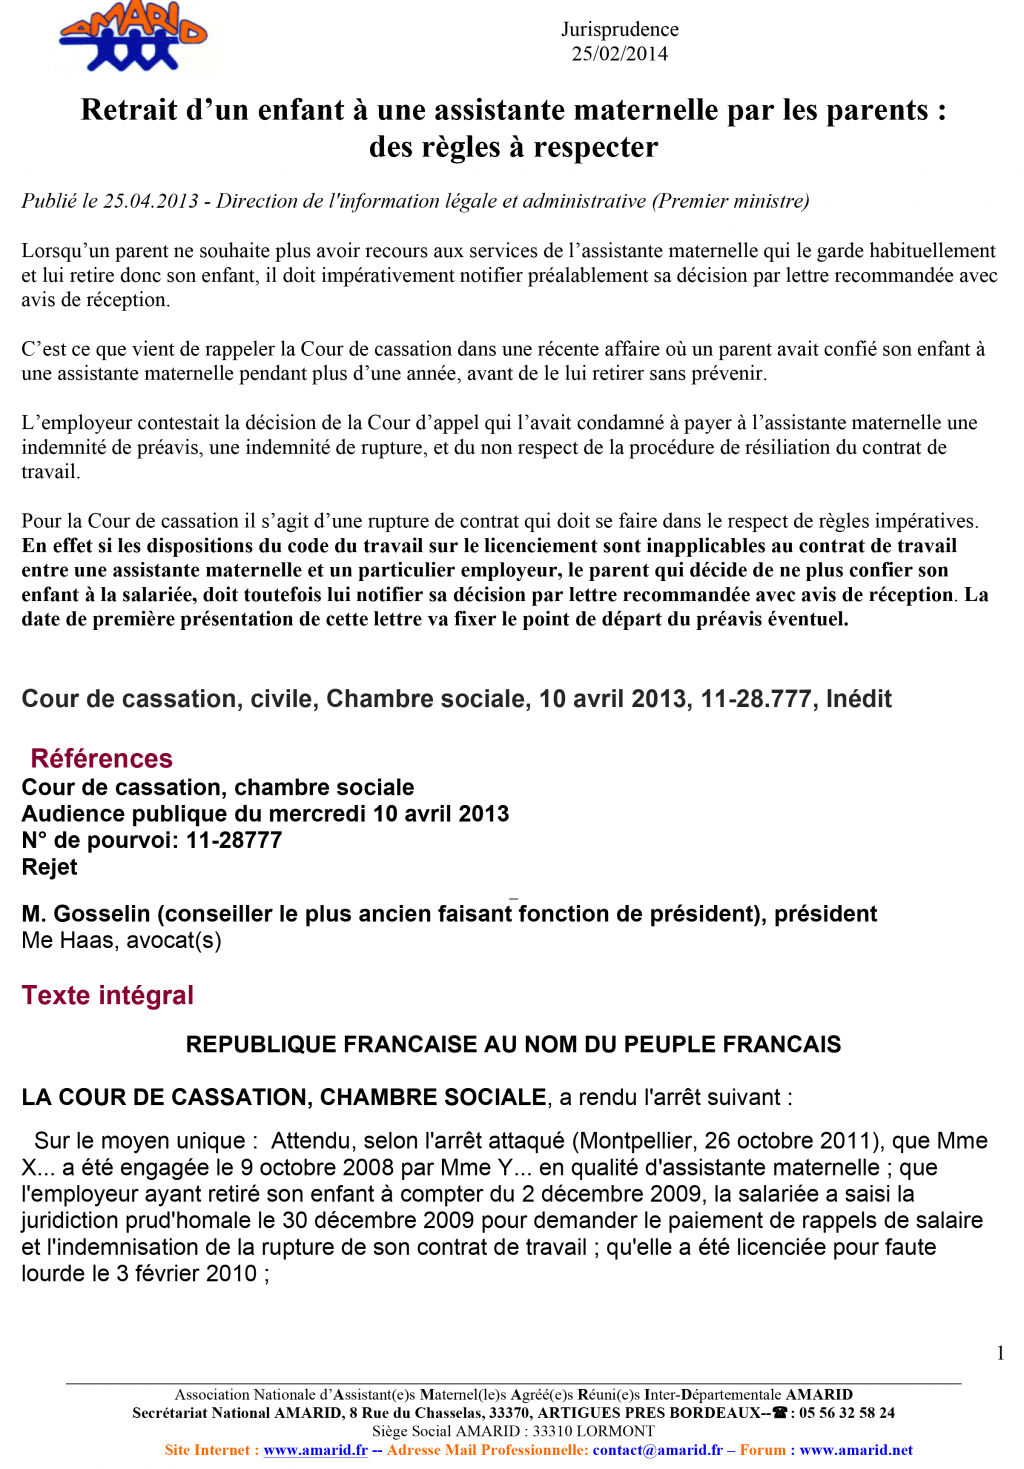 Conditions de retrait de l'enfant Retrait-enfant1-442386c